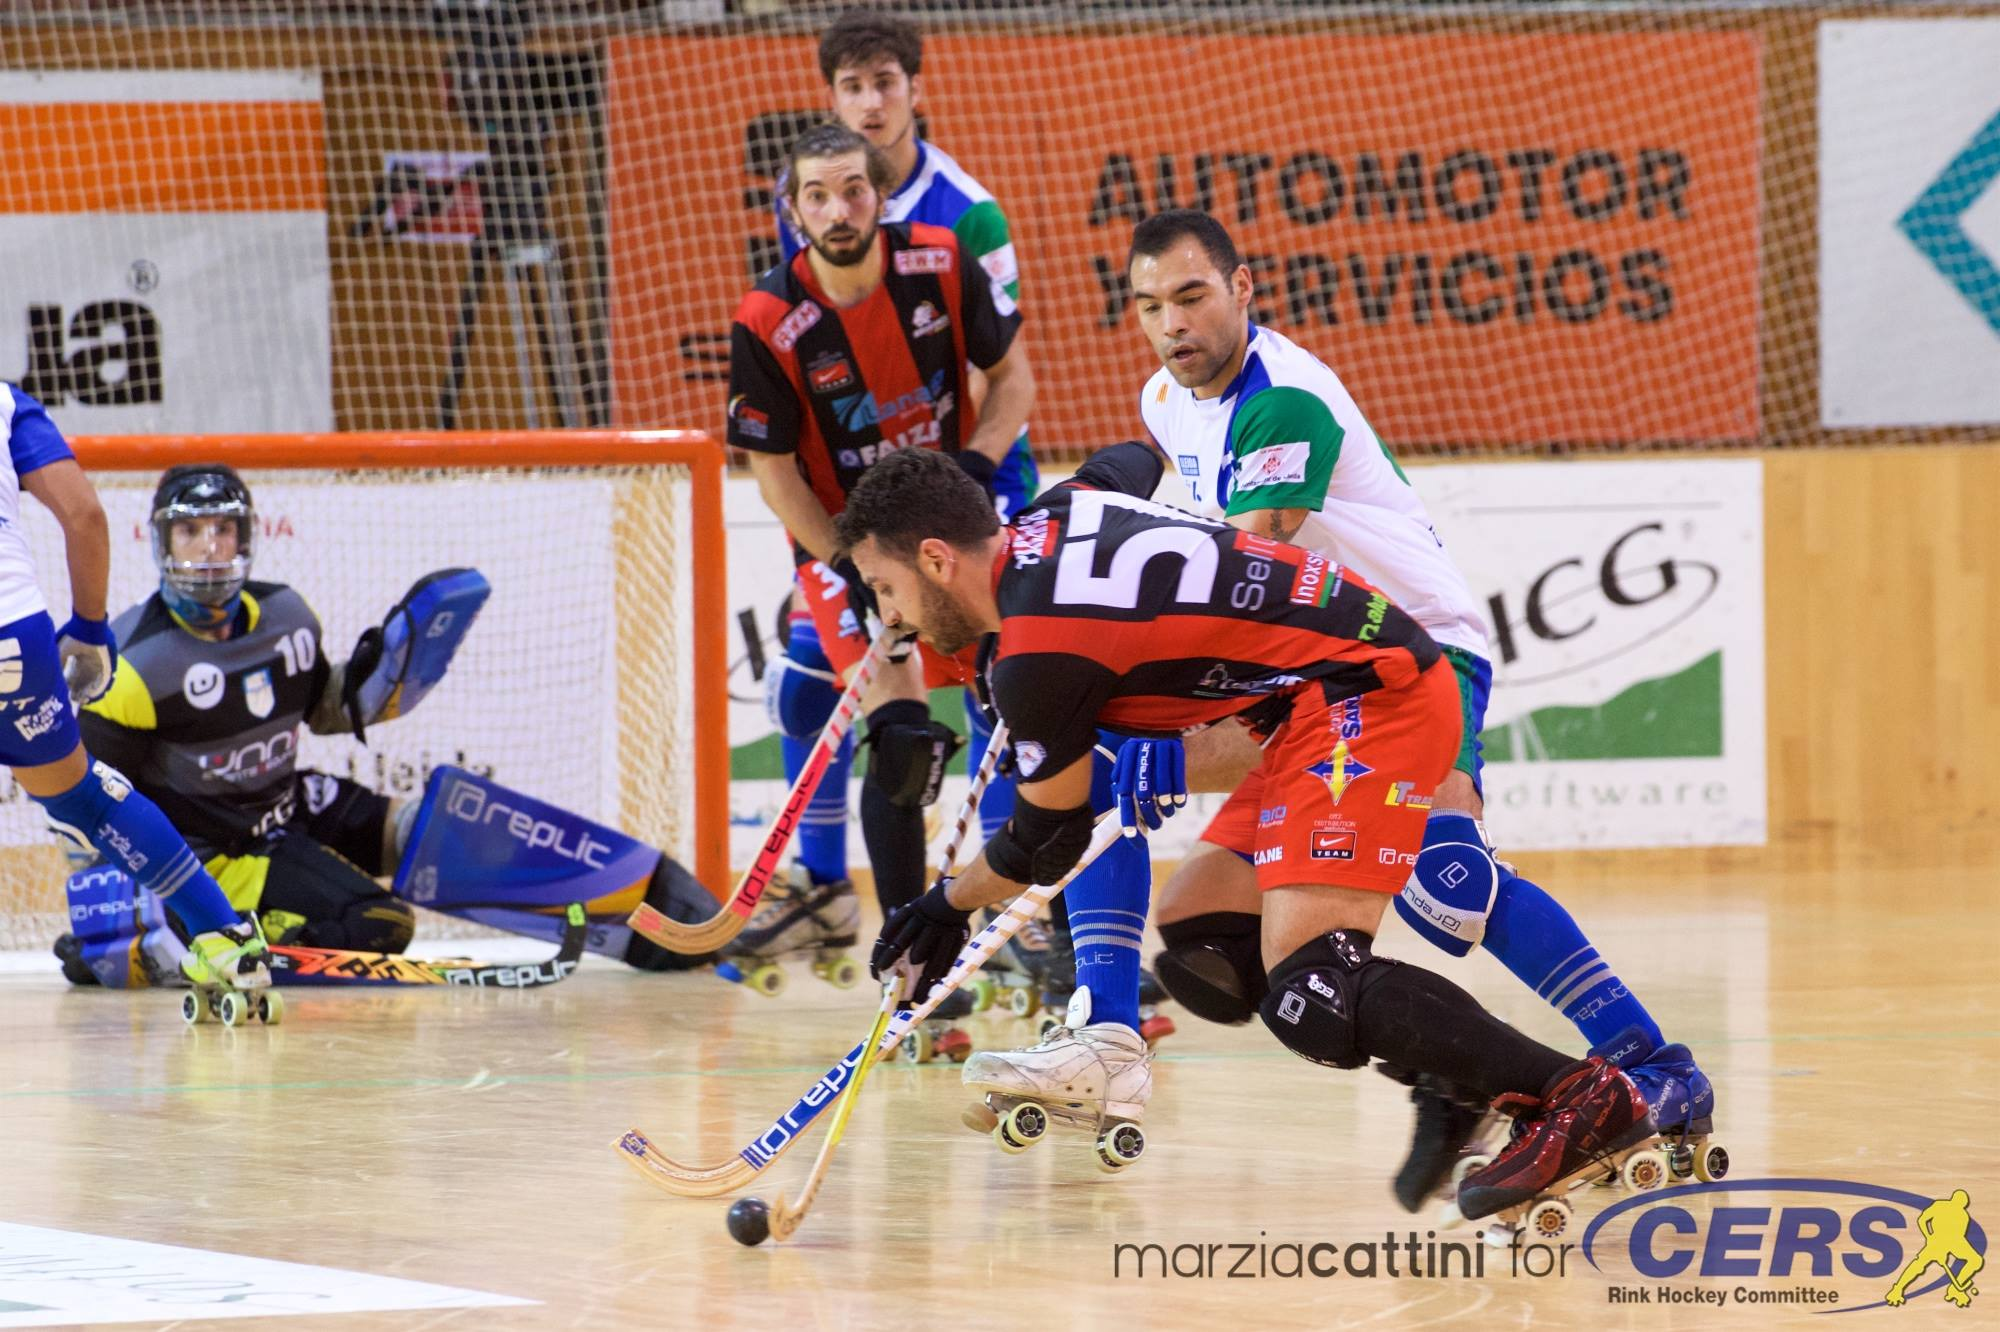 PHOTOS - 28/04/2018 - CERS CUP - Match #119 – Semifinal #2 – CP Voltregà (SP) v OC Barcelos (PT) - Photos by Marzia Cattini